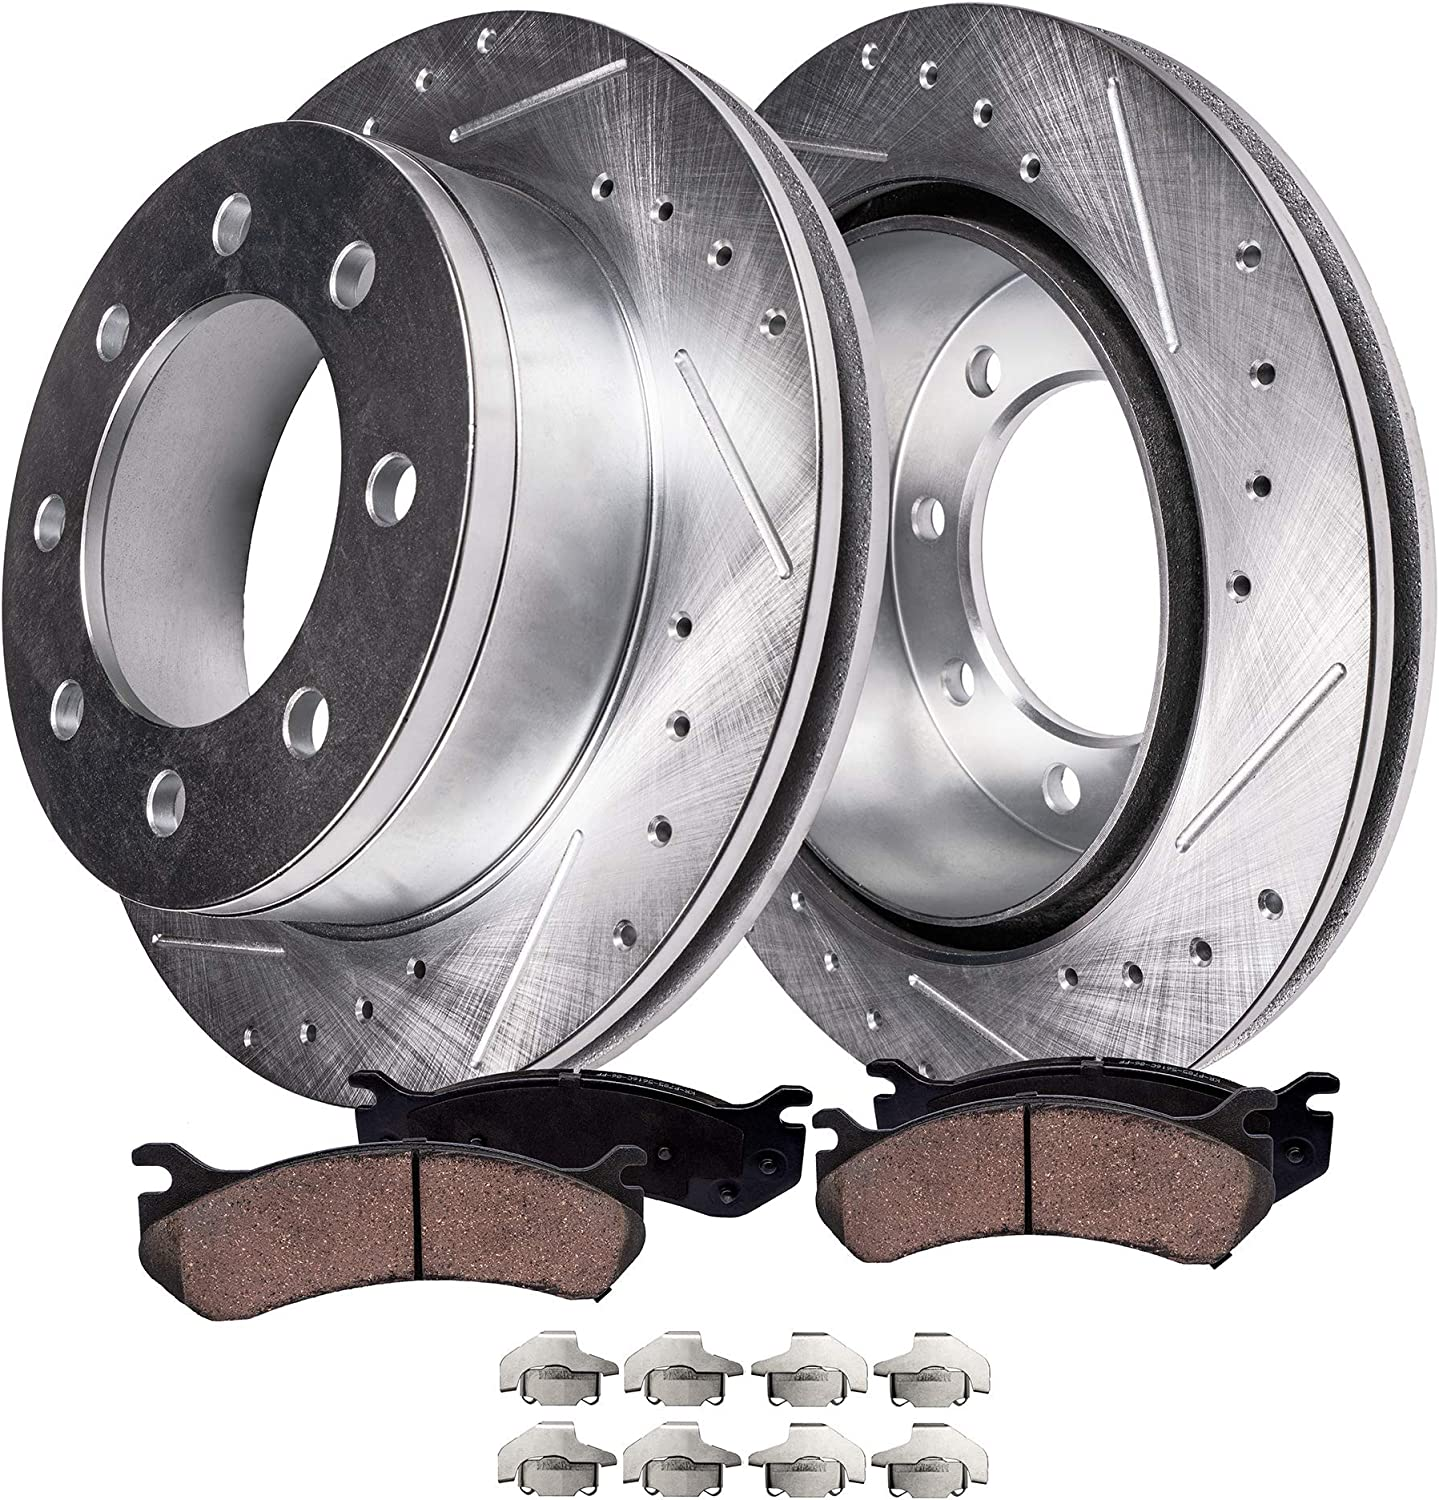 1999-2004 Ford F-350 Super Duty Front Black Slotted Brake Rotors /& Ceramic Pads